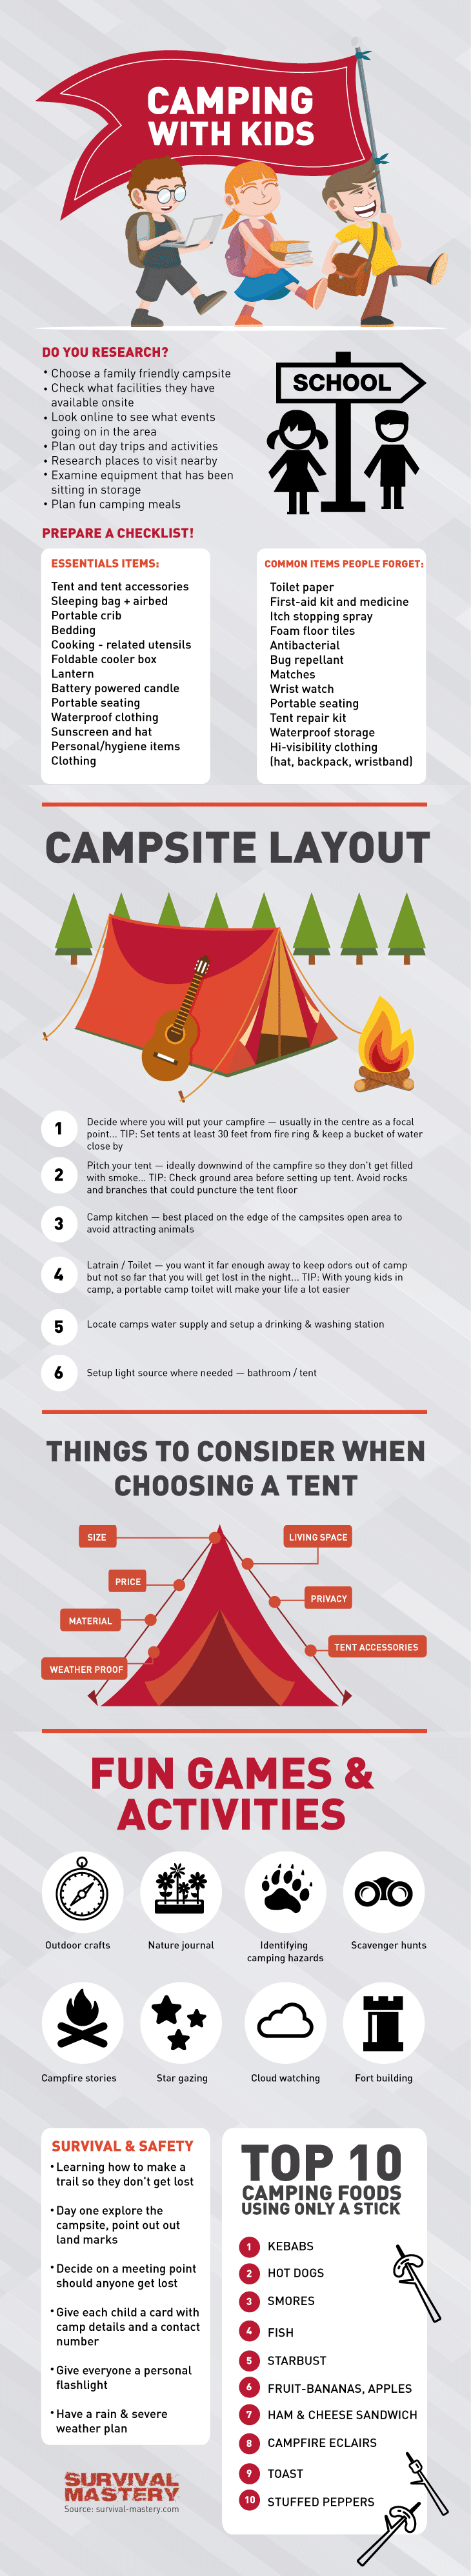 Camping with kids infographic